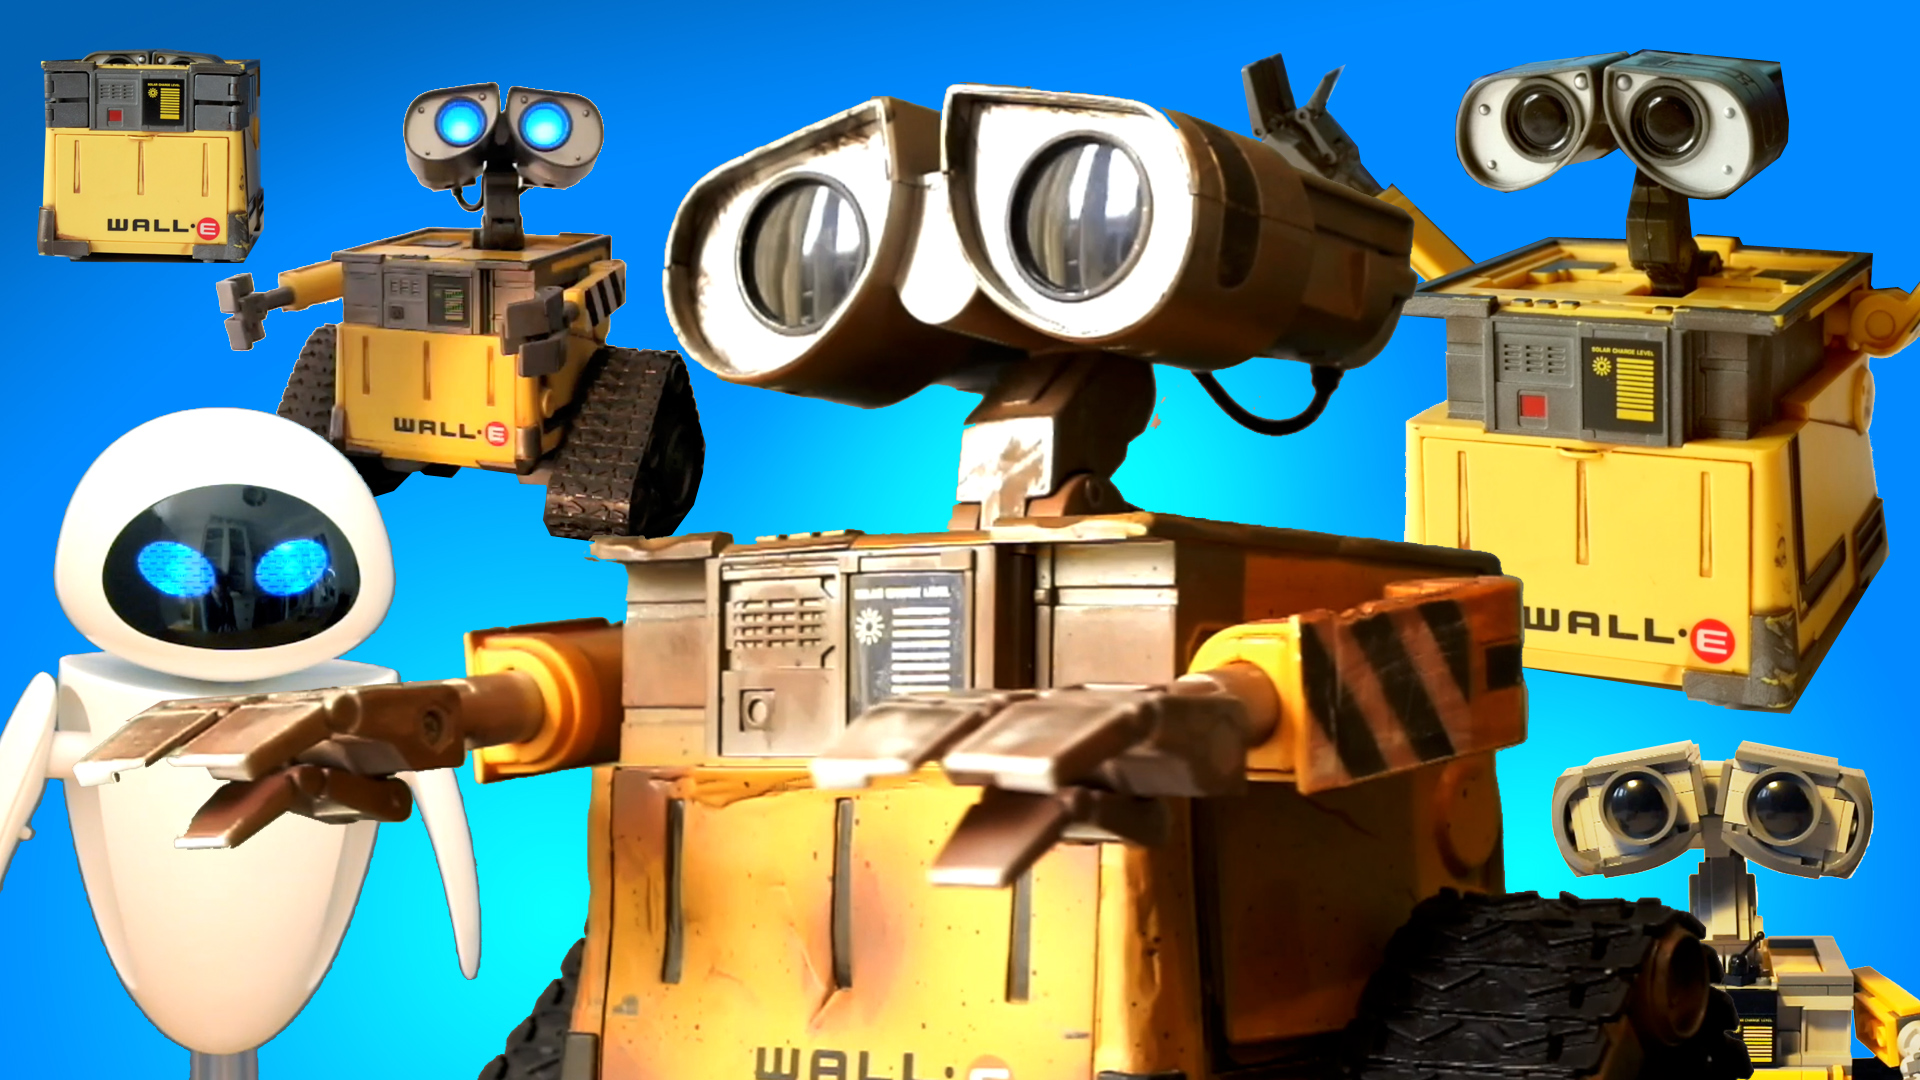 Lots and lots of WALL-E TOYS